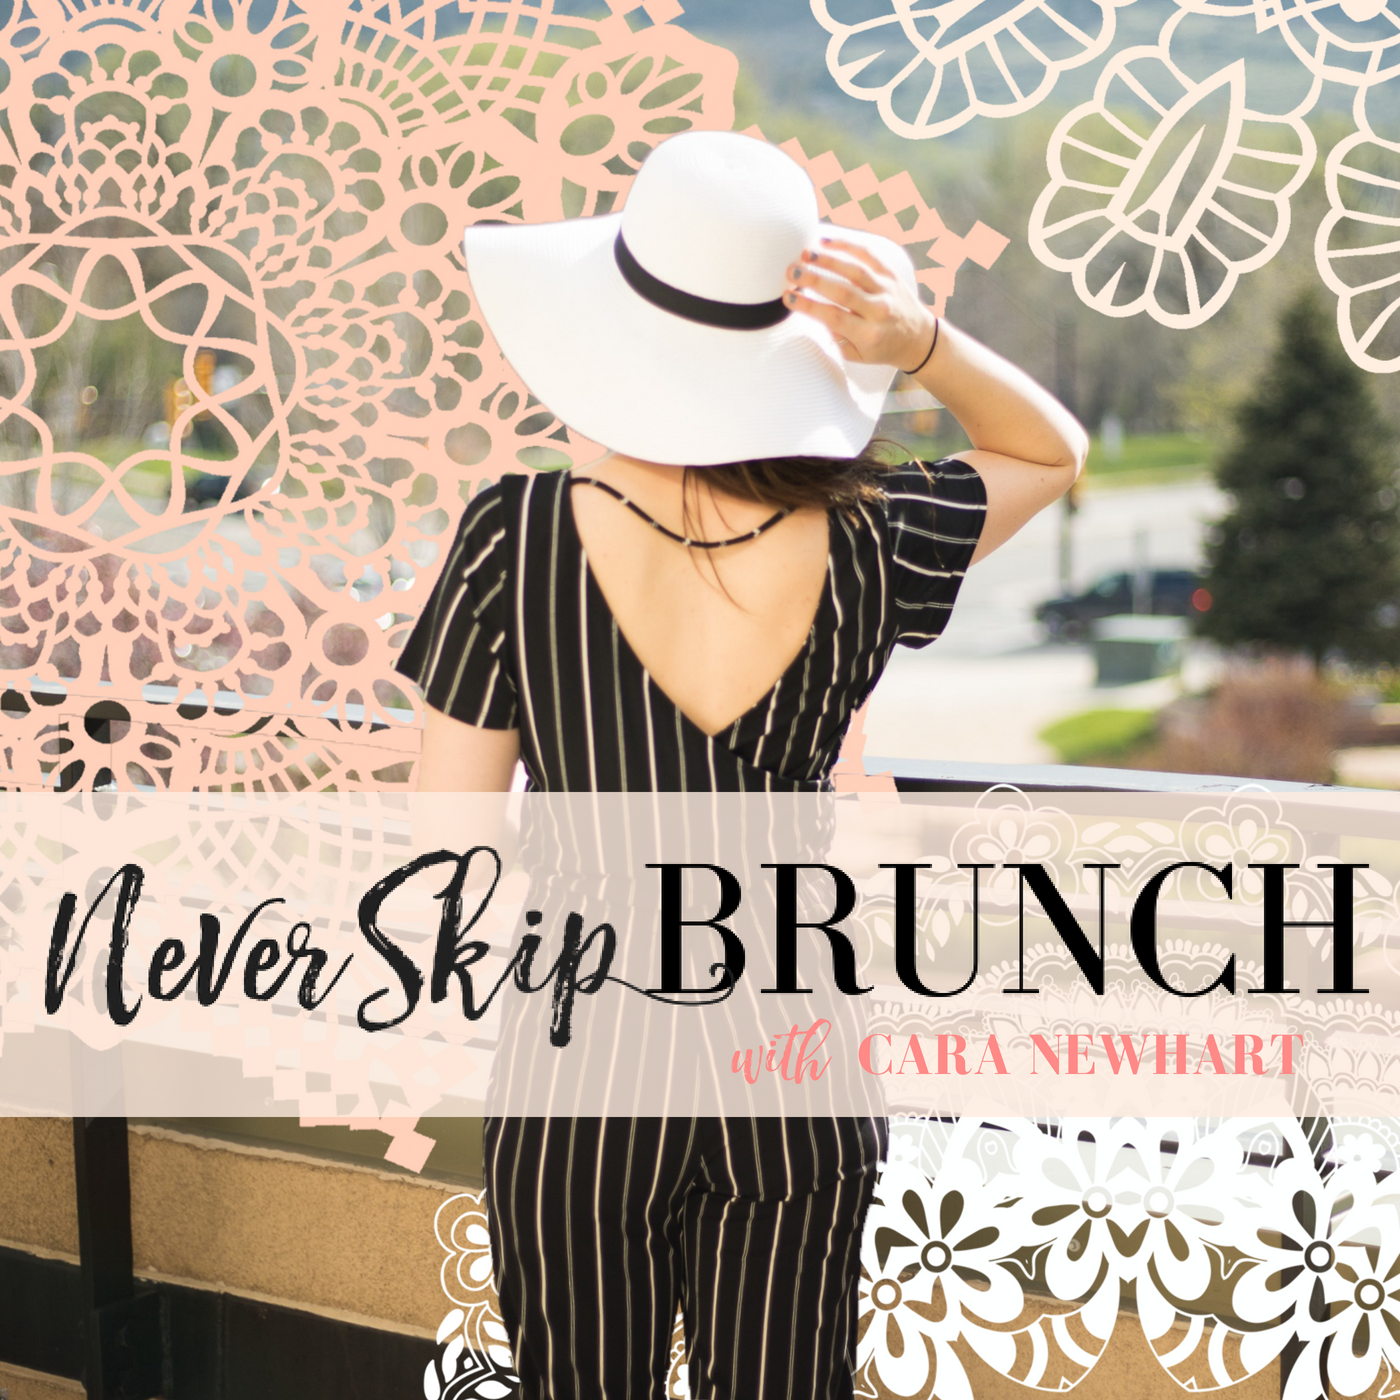 NEVER SKIP BRUNCH with Cara Newhart